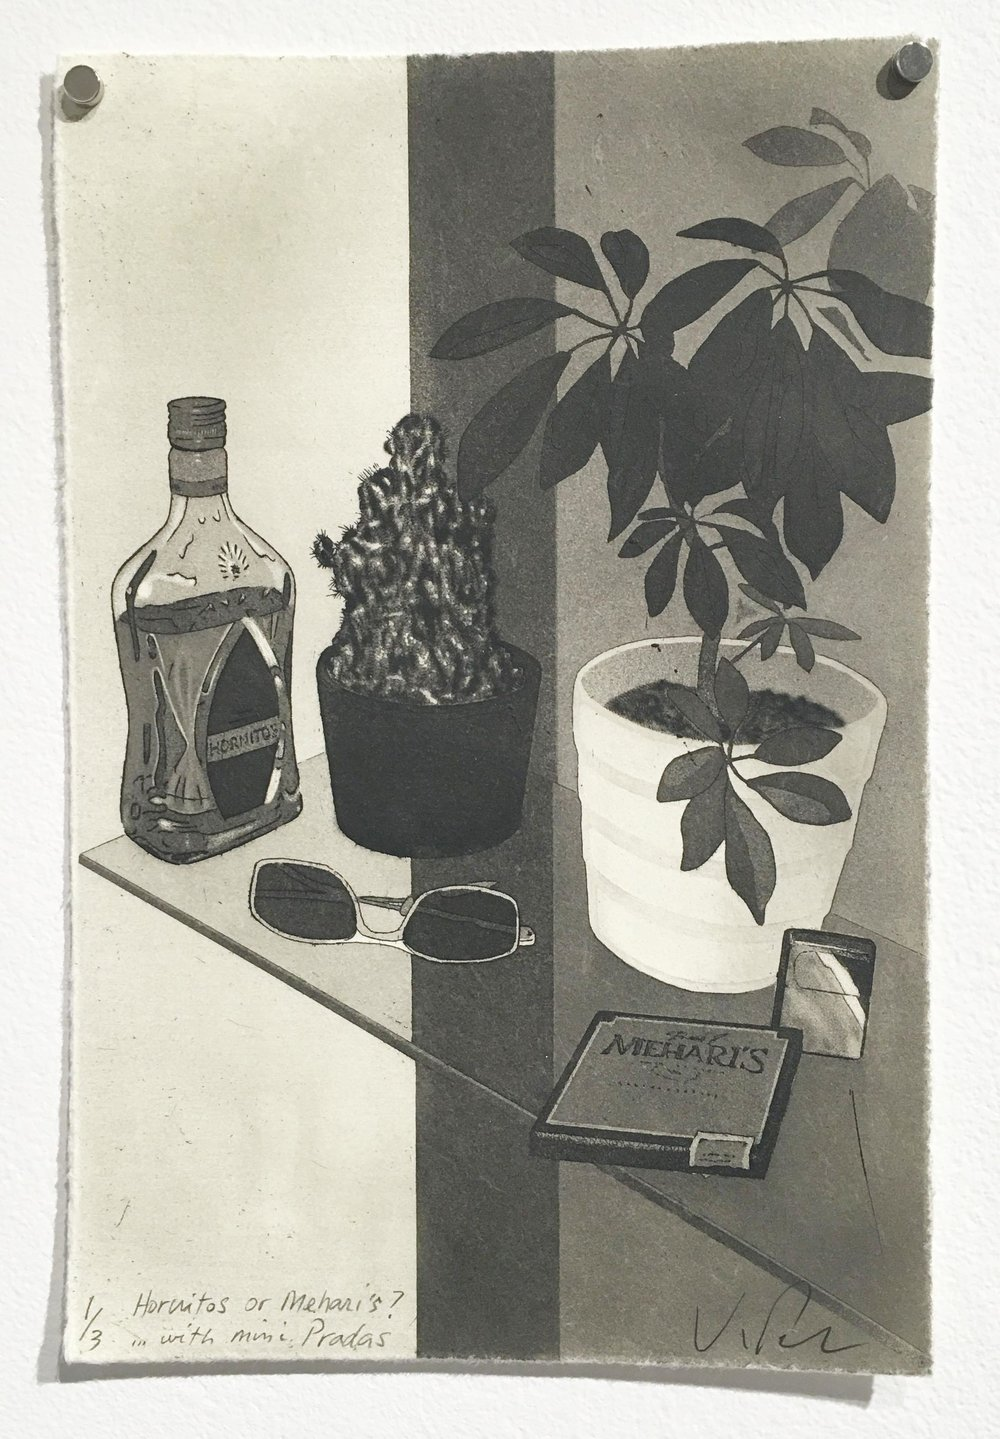 First Prize – Kurt Pammer, Hornitos or Mehari's? in with mini Pradas (2014), aquatint, etching, drypoint